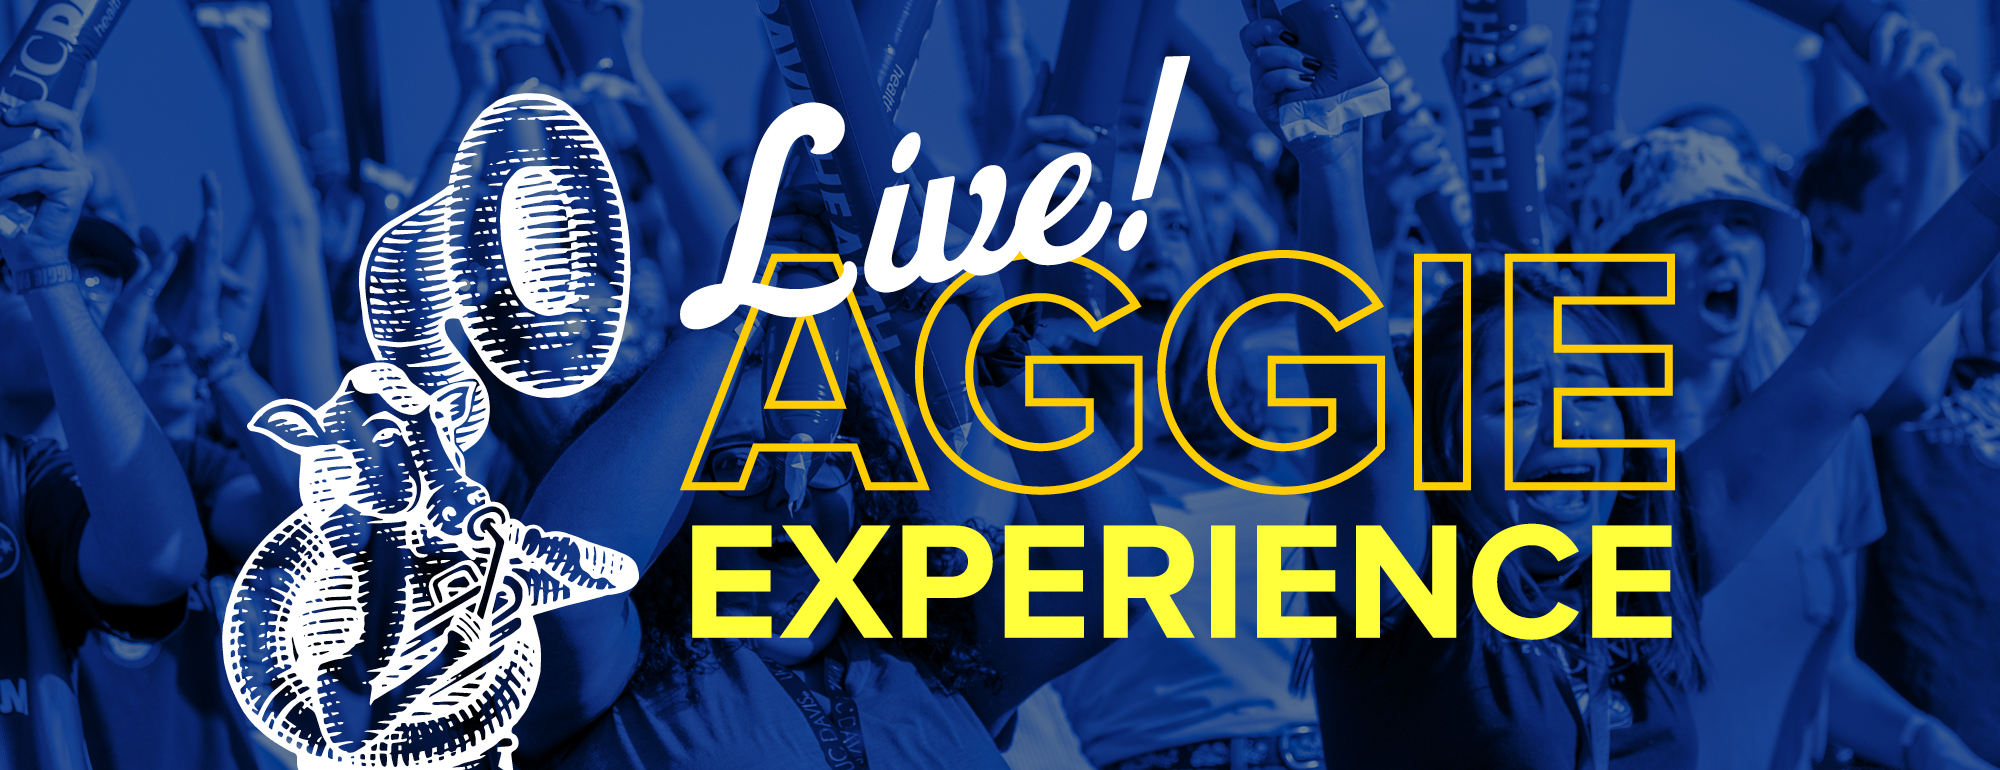 Aggie Experience Live